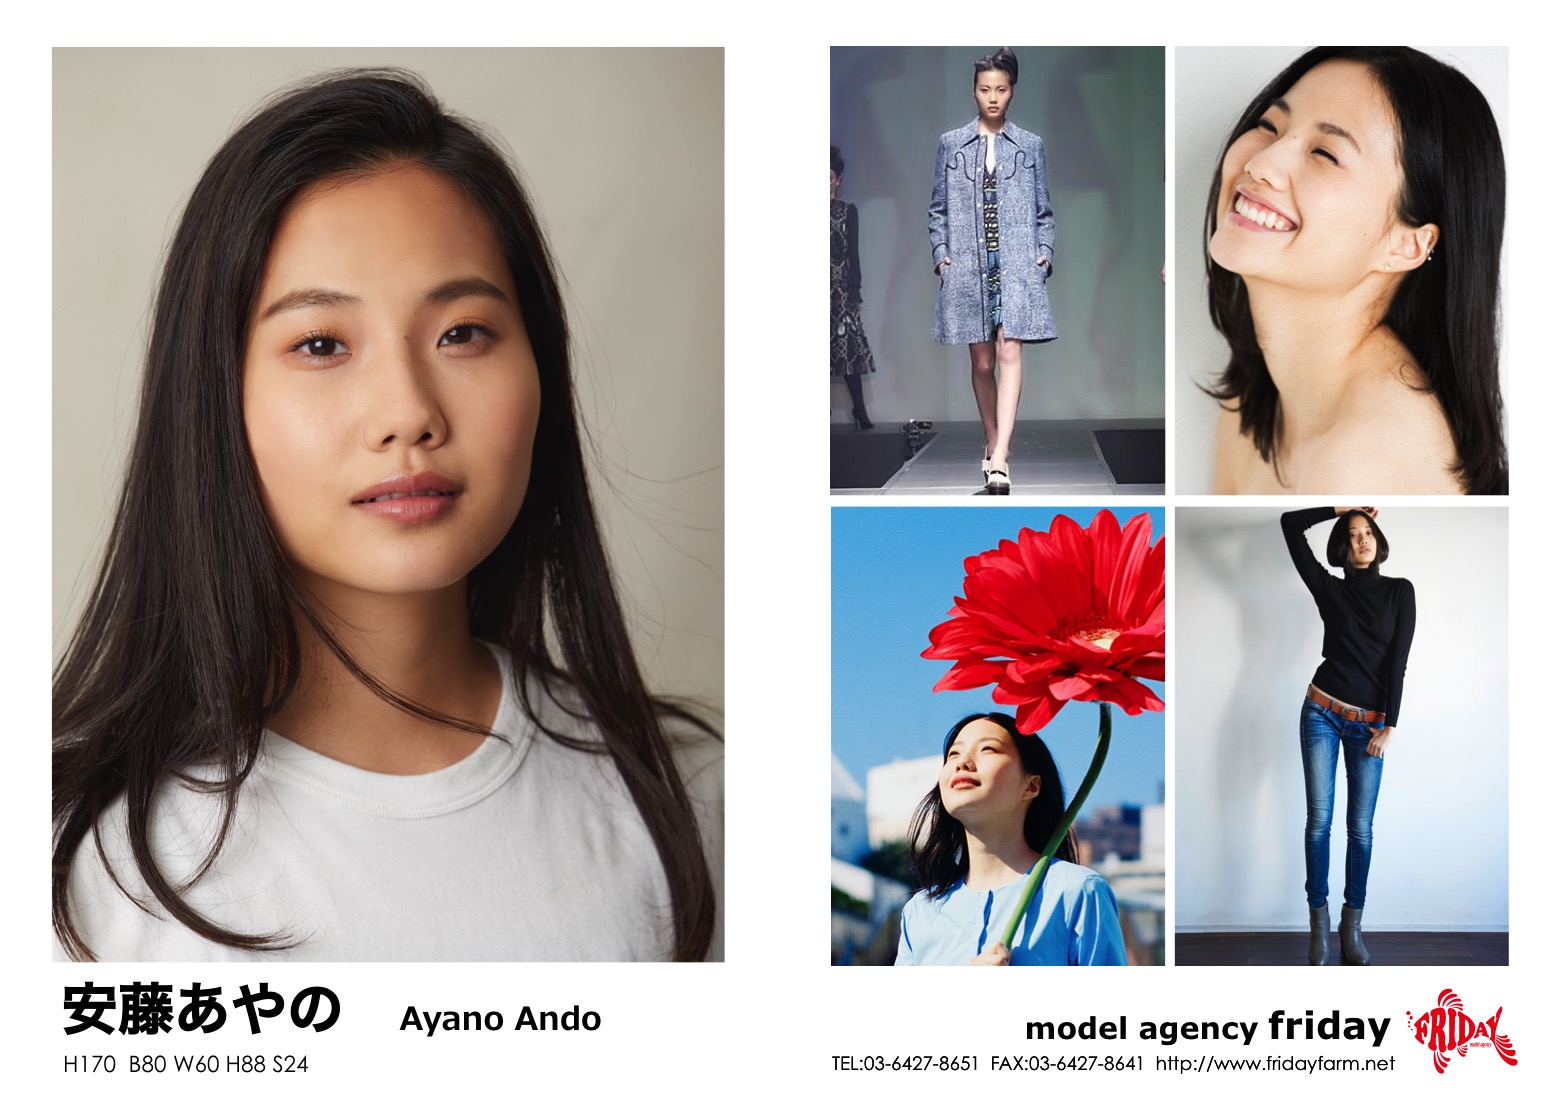 安藤 あやの - Ayano Ando | model agency friday